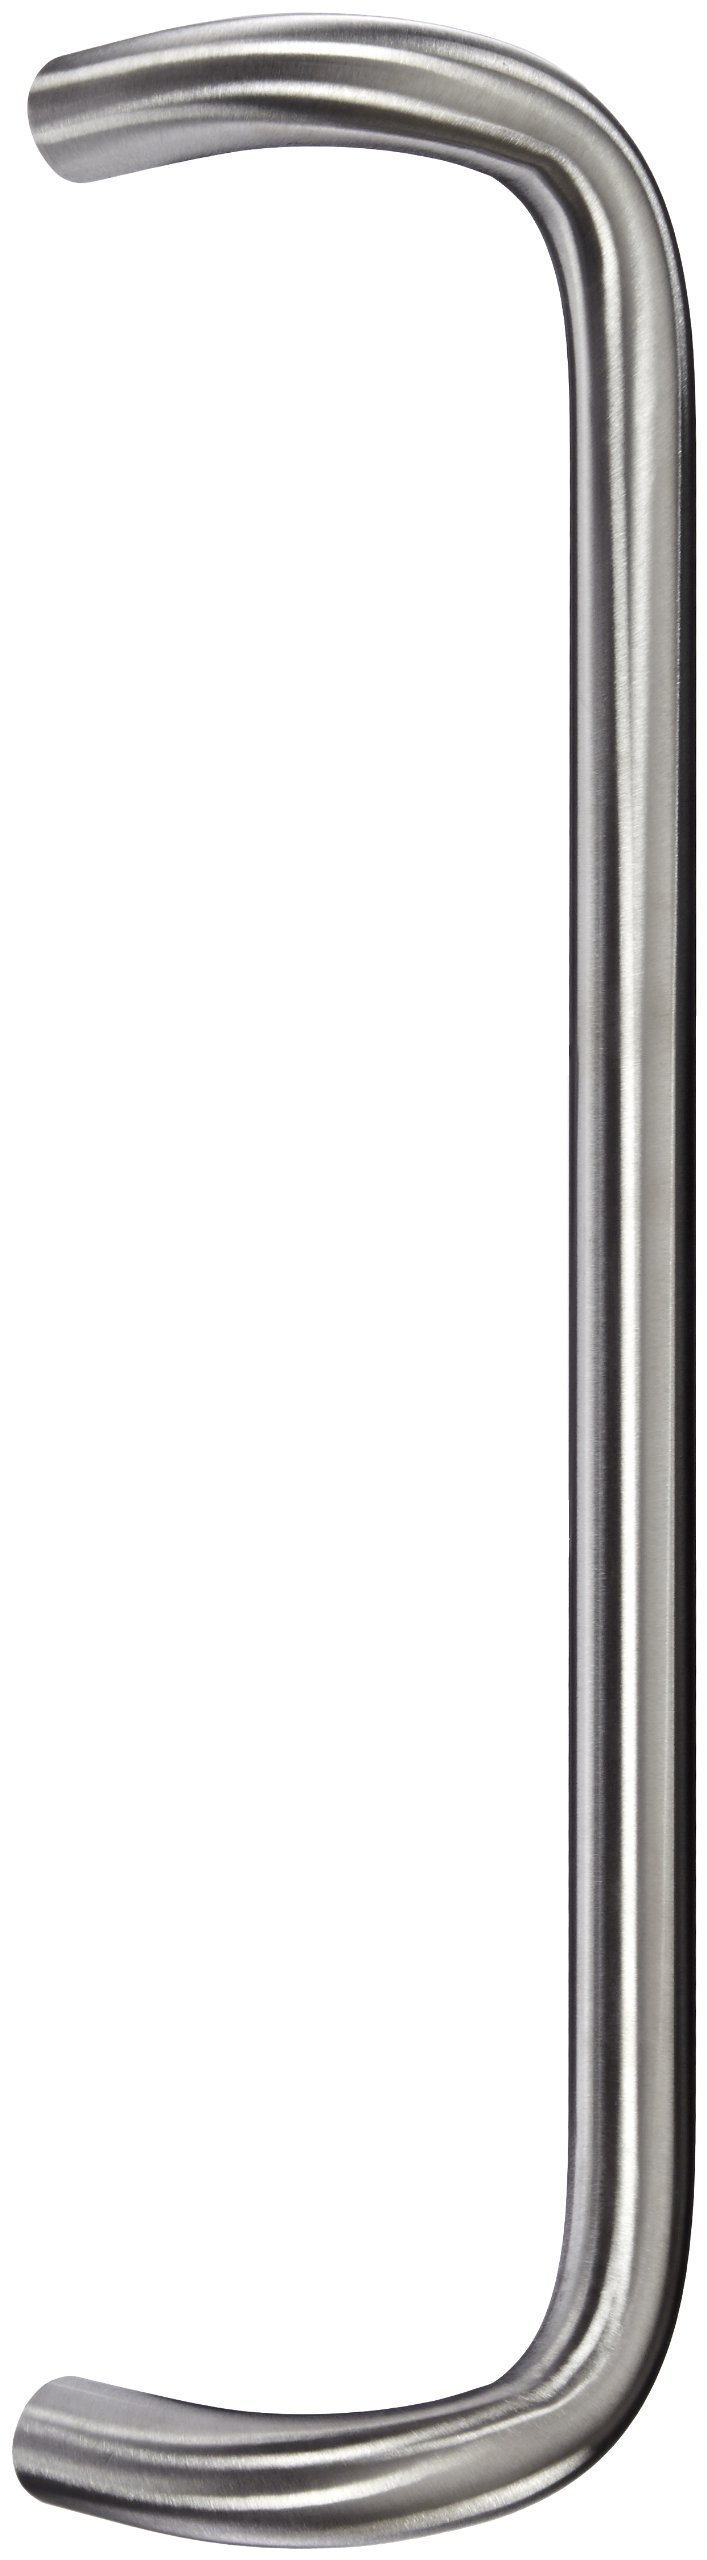 Rockwood BF159C17.32D Stainless Steel 90-Degree Offset Door Pull, 1'' Diameter x 18'' Center-to-Center, Concealed Mounting for 1-3/4'' Door, Satin Finish